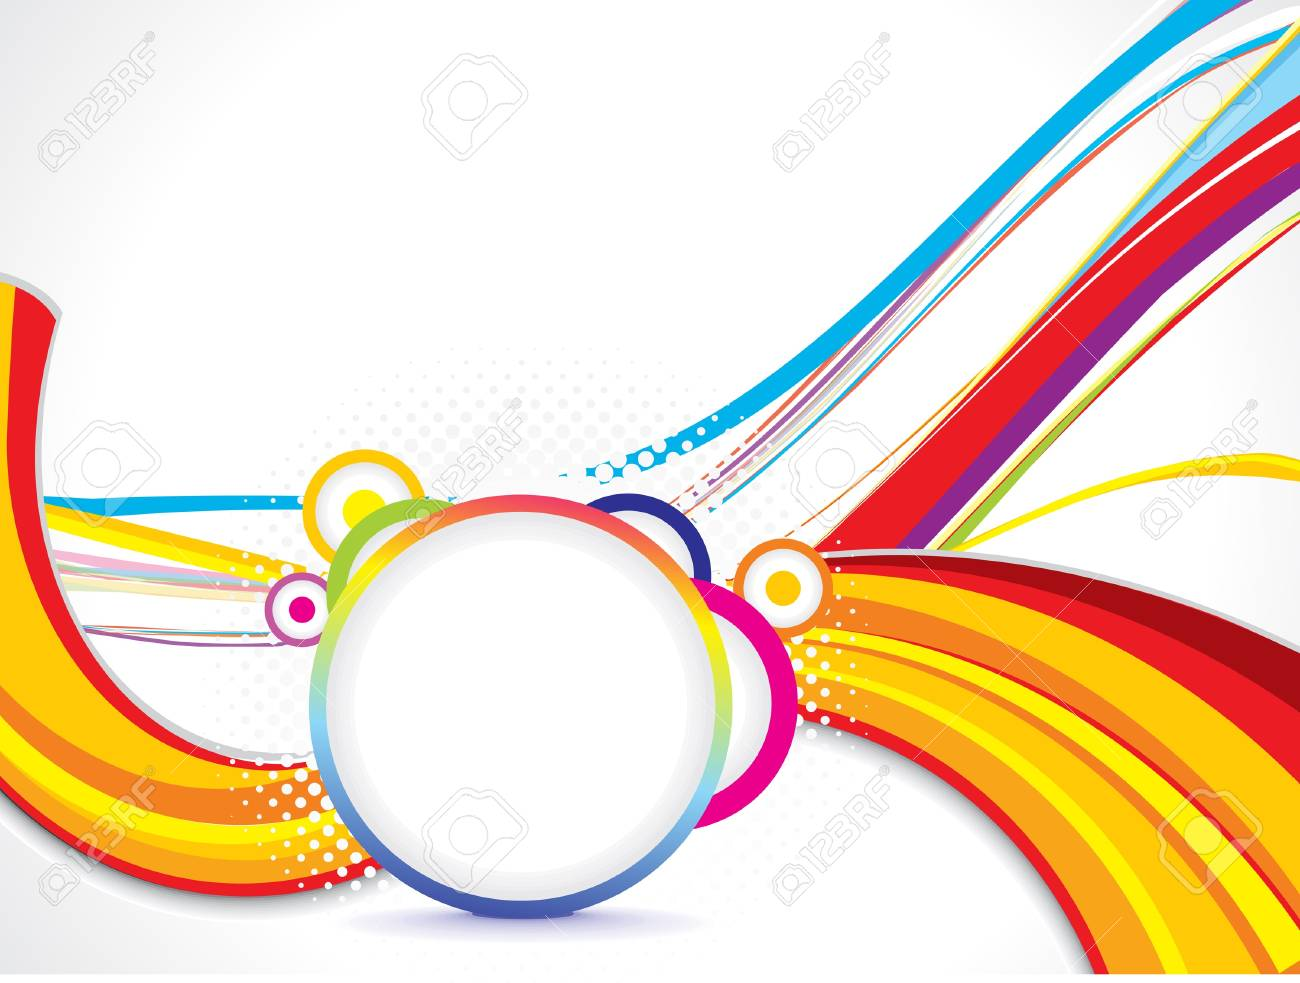 abstract wave background with cirlce vector illustration Stock Vector - 17907967